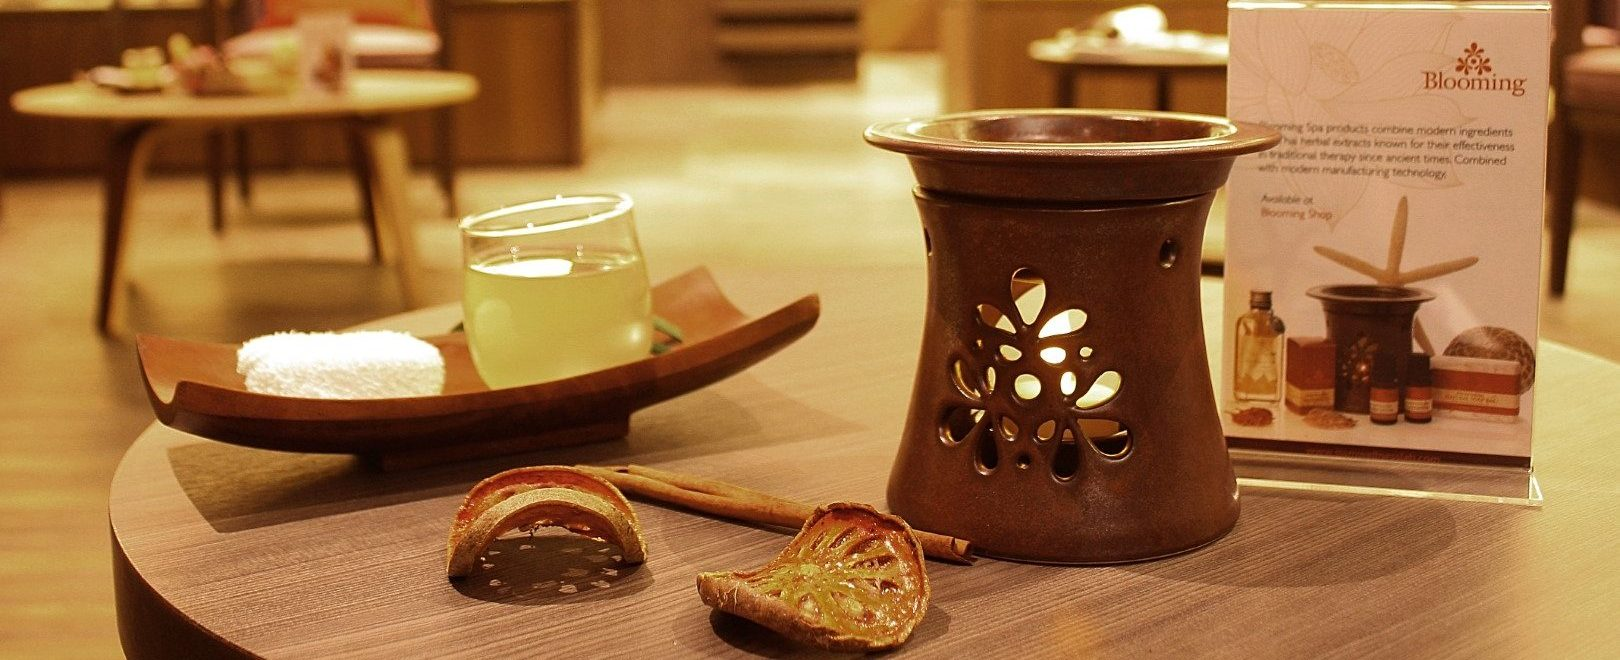 A Journey Through the Senses: Scent of Relaxation...